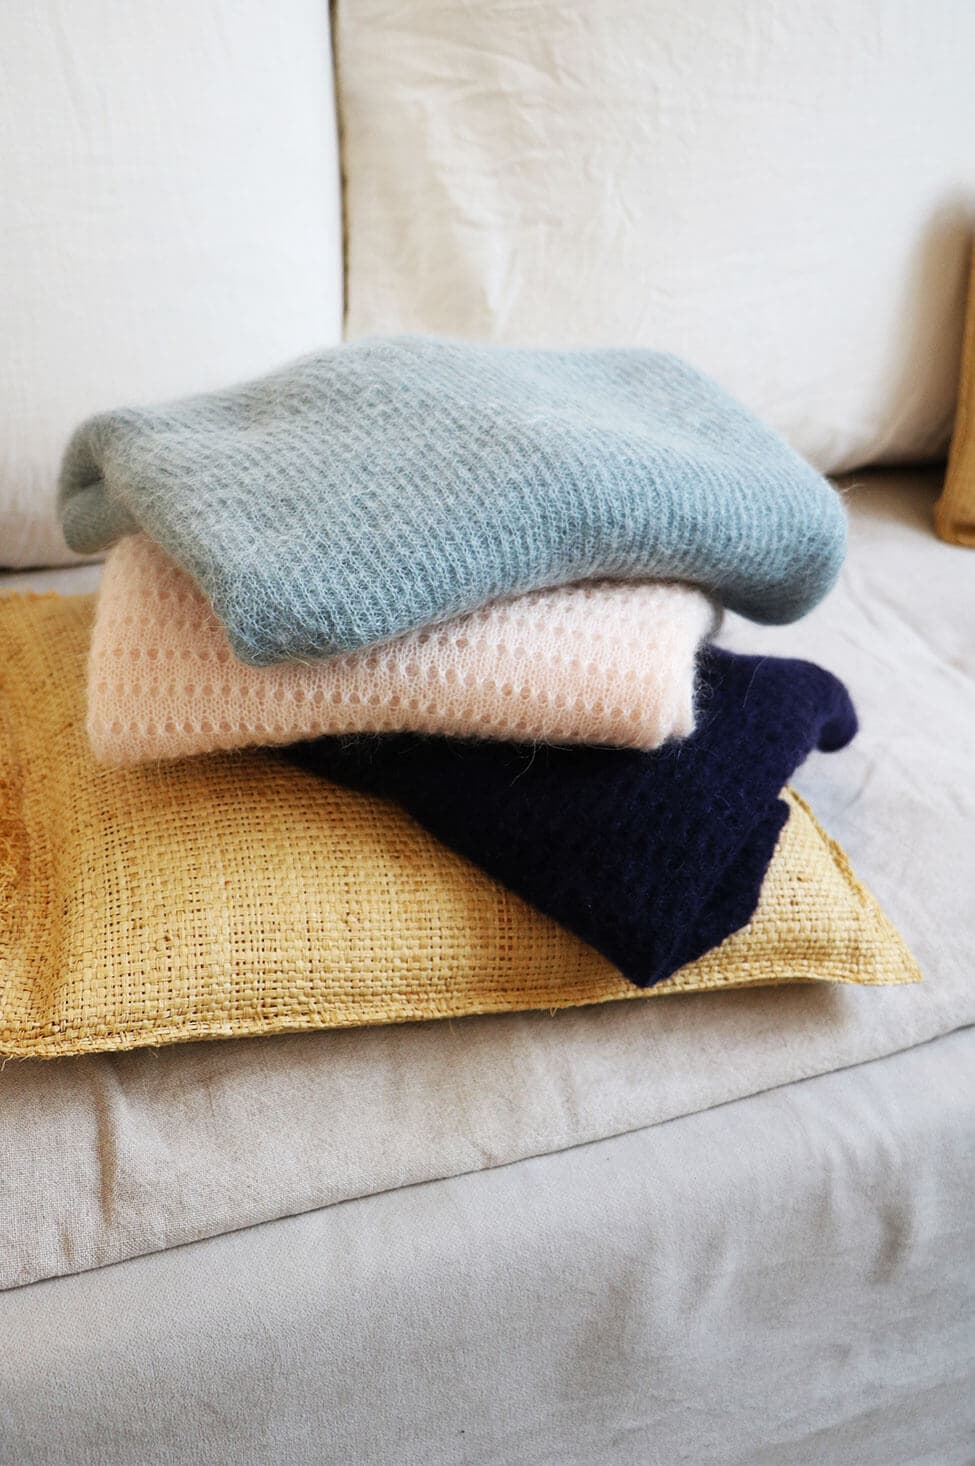 How to wash and maintain your wool clothes